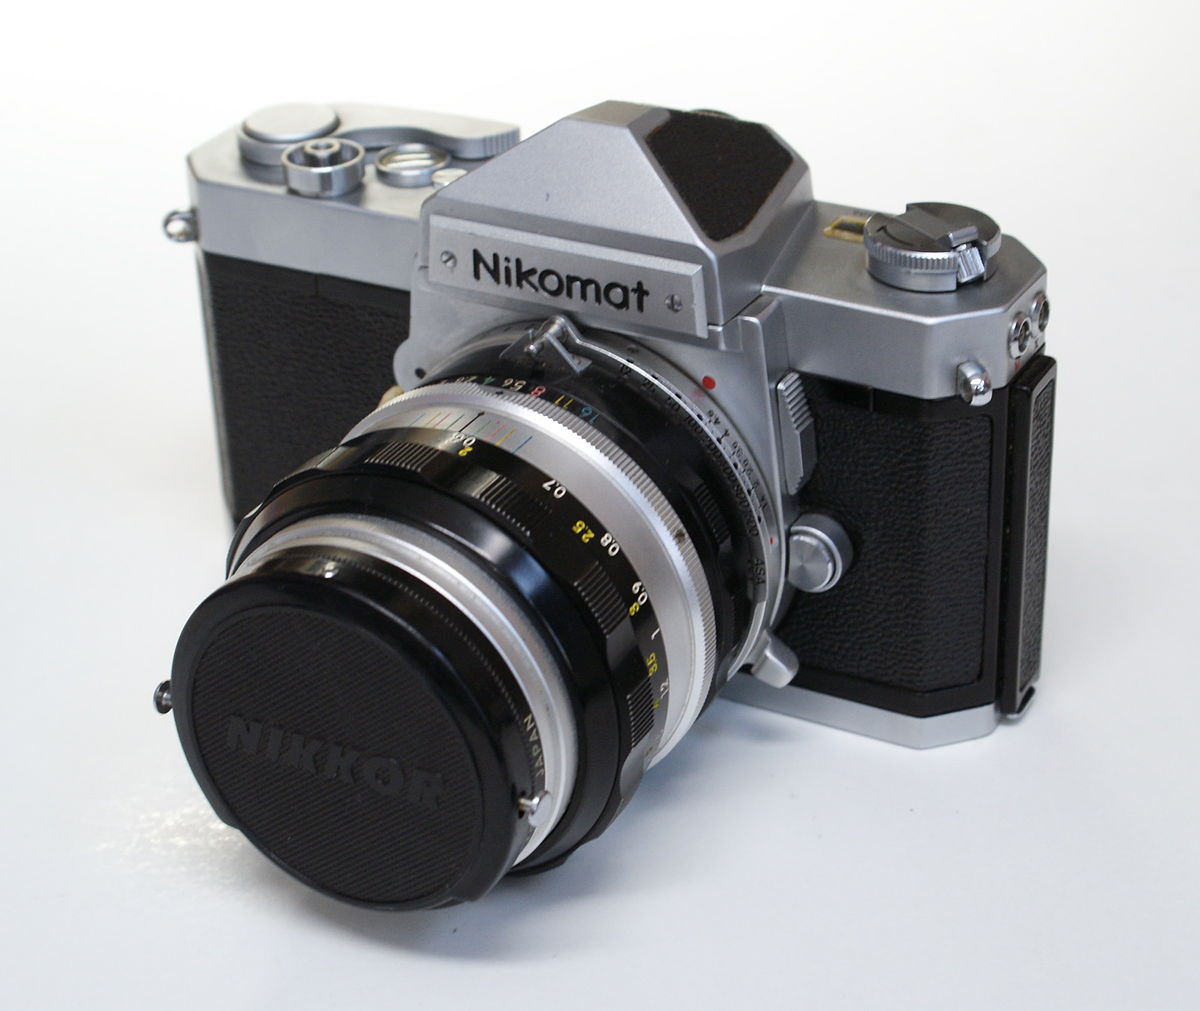 Nikkormat wikipedia for Camera camera